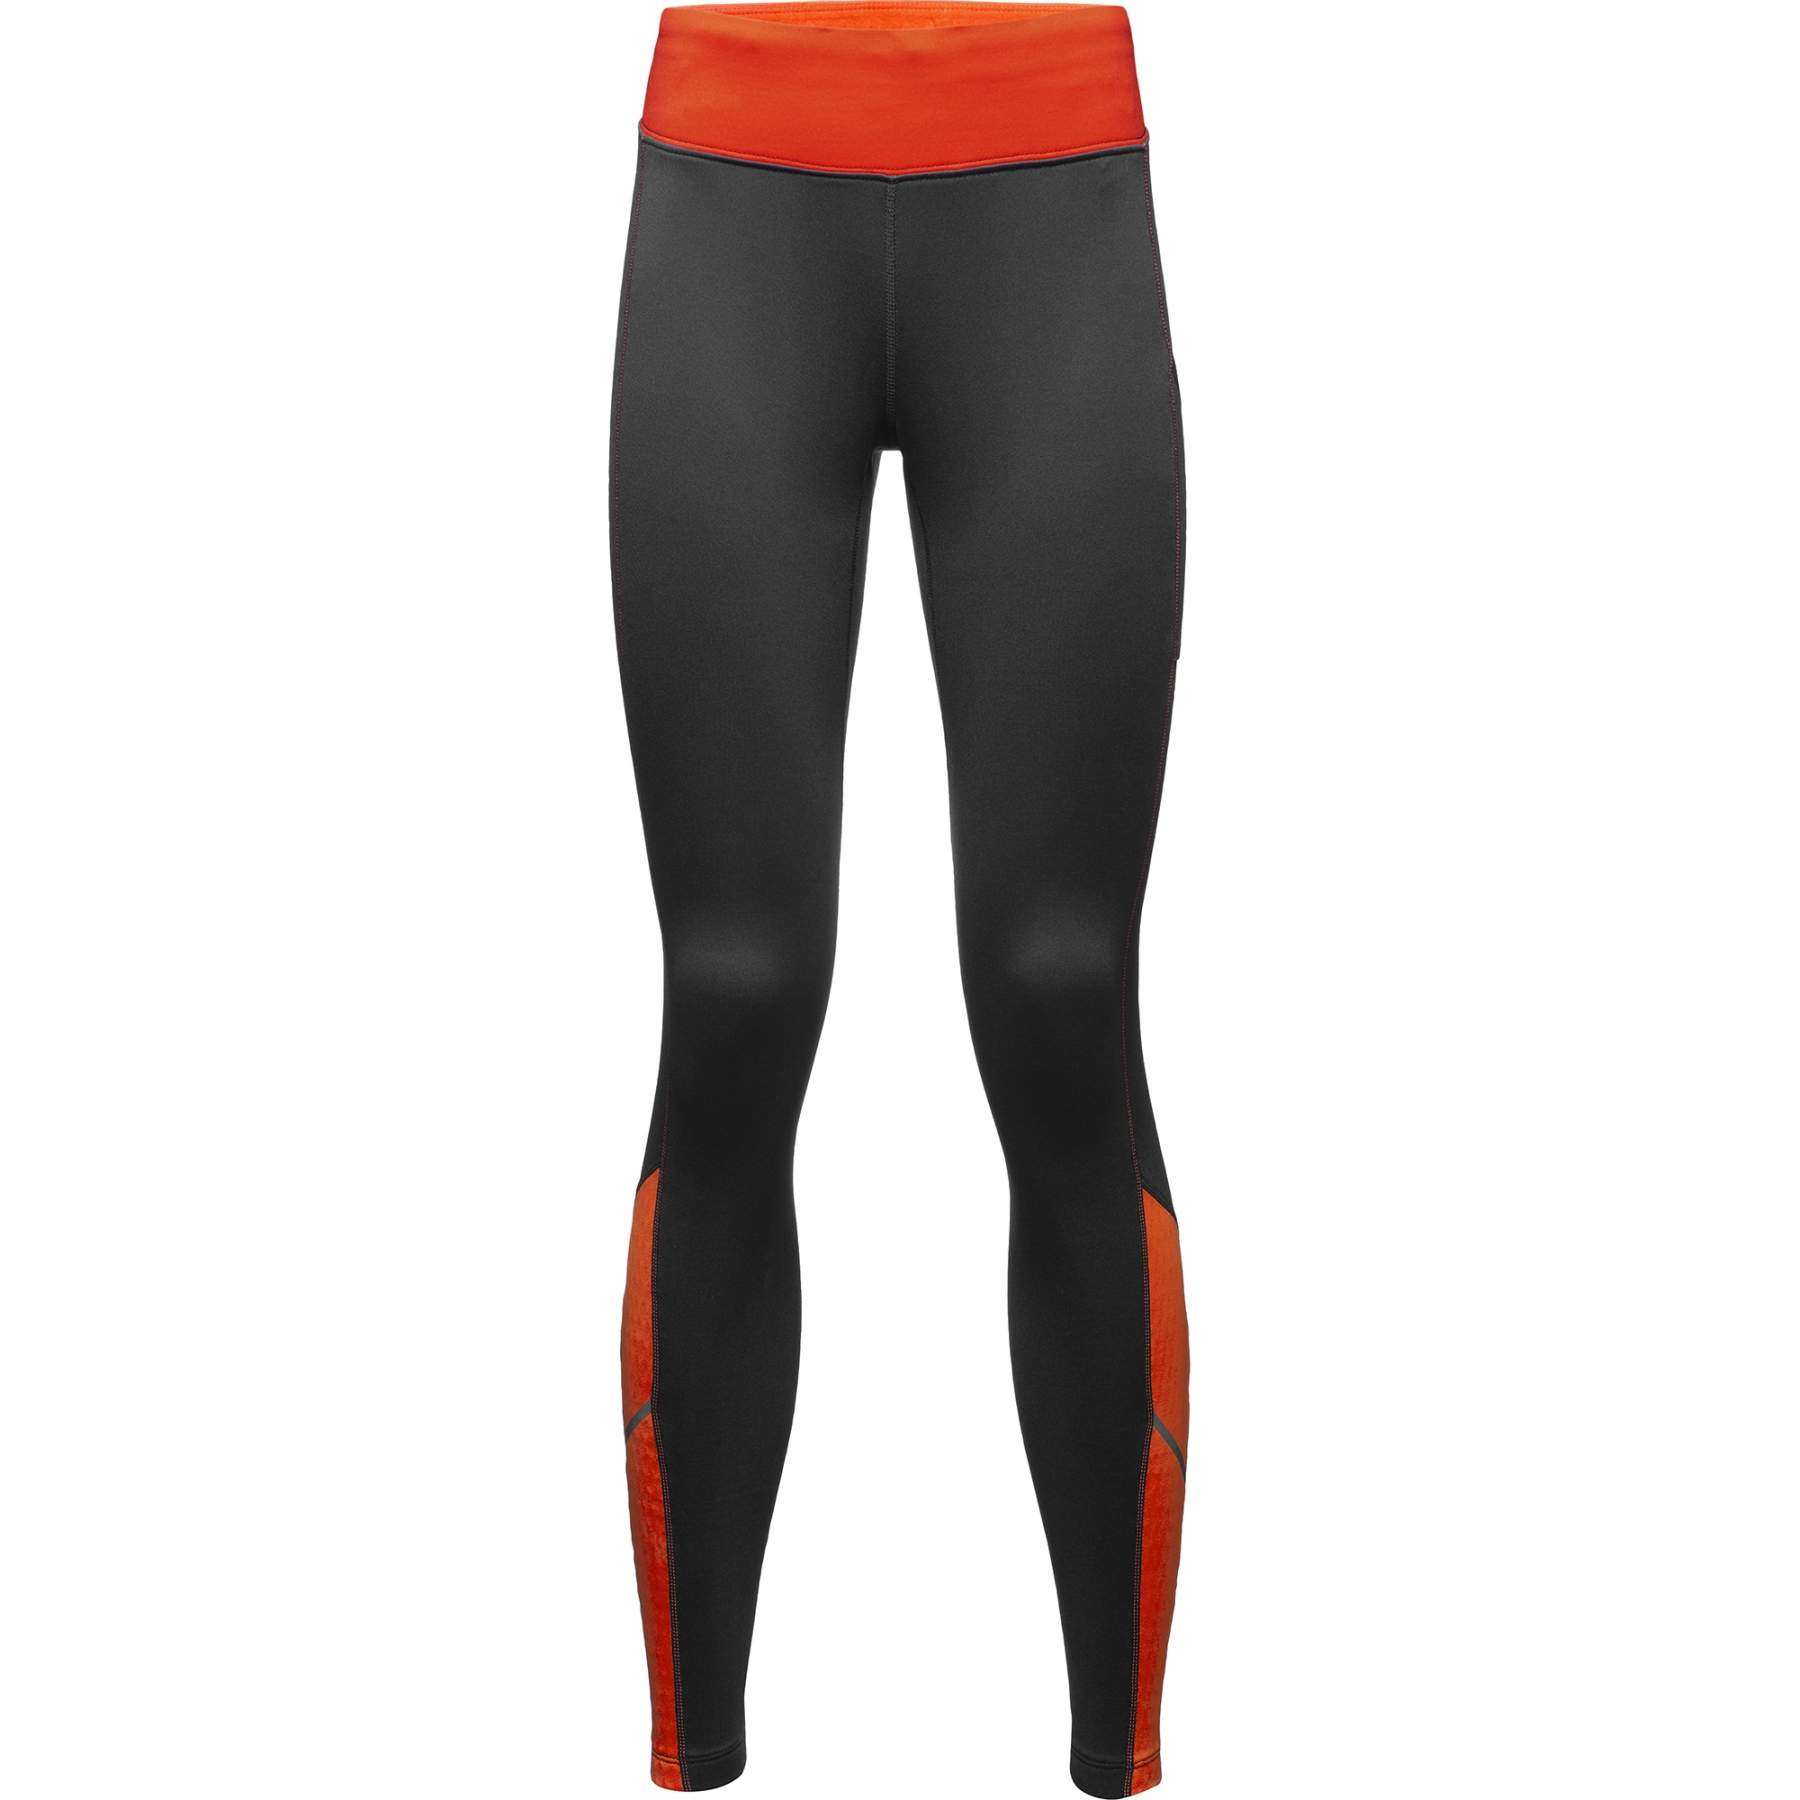 GORE Wear R3 Thermo Tights for Women - black/fireball 99AY